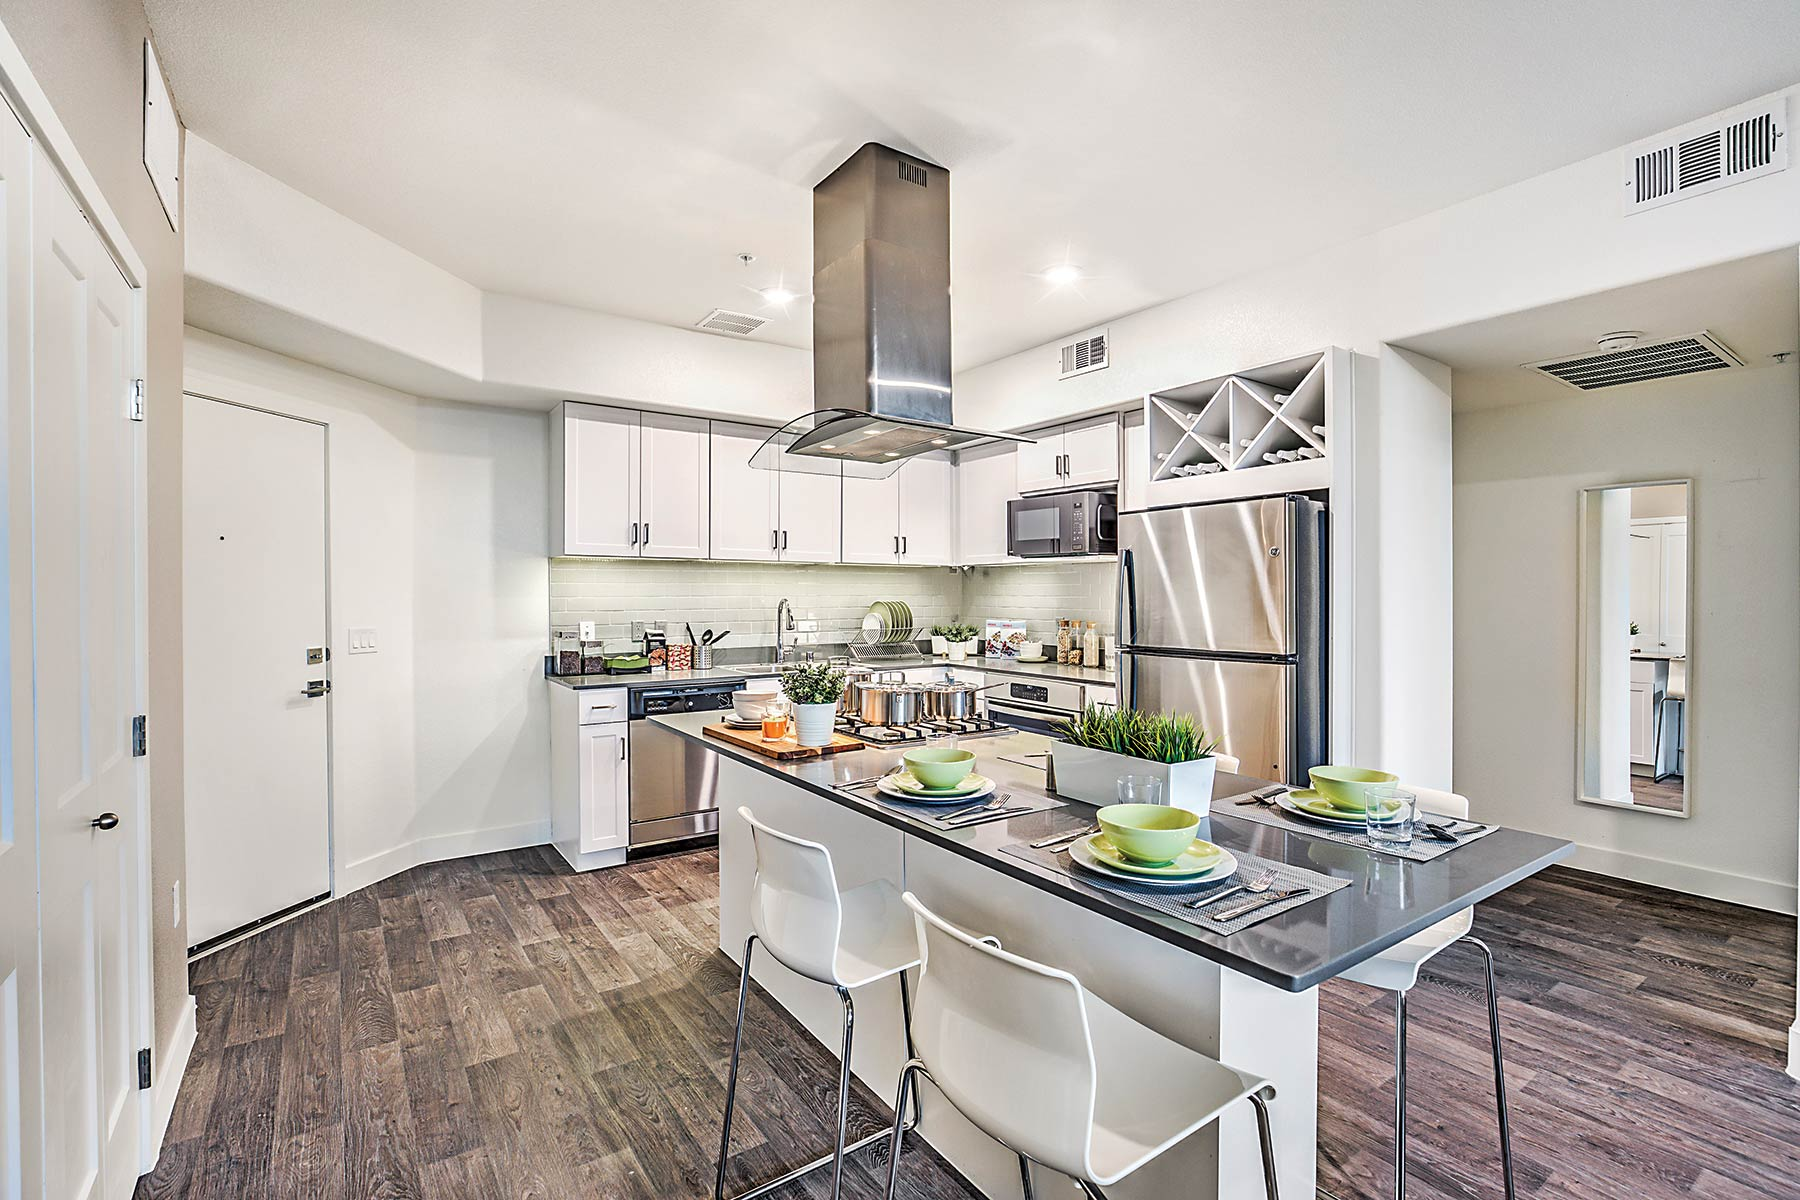 Contemporary kitchen with large island with bar seating, white cabinetry, quartz countertops, Energy Star GE appliances, and wood-style flooring.